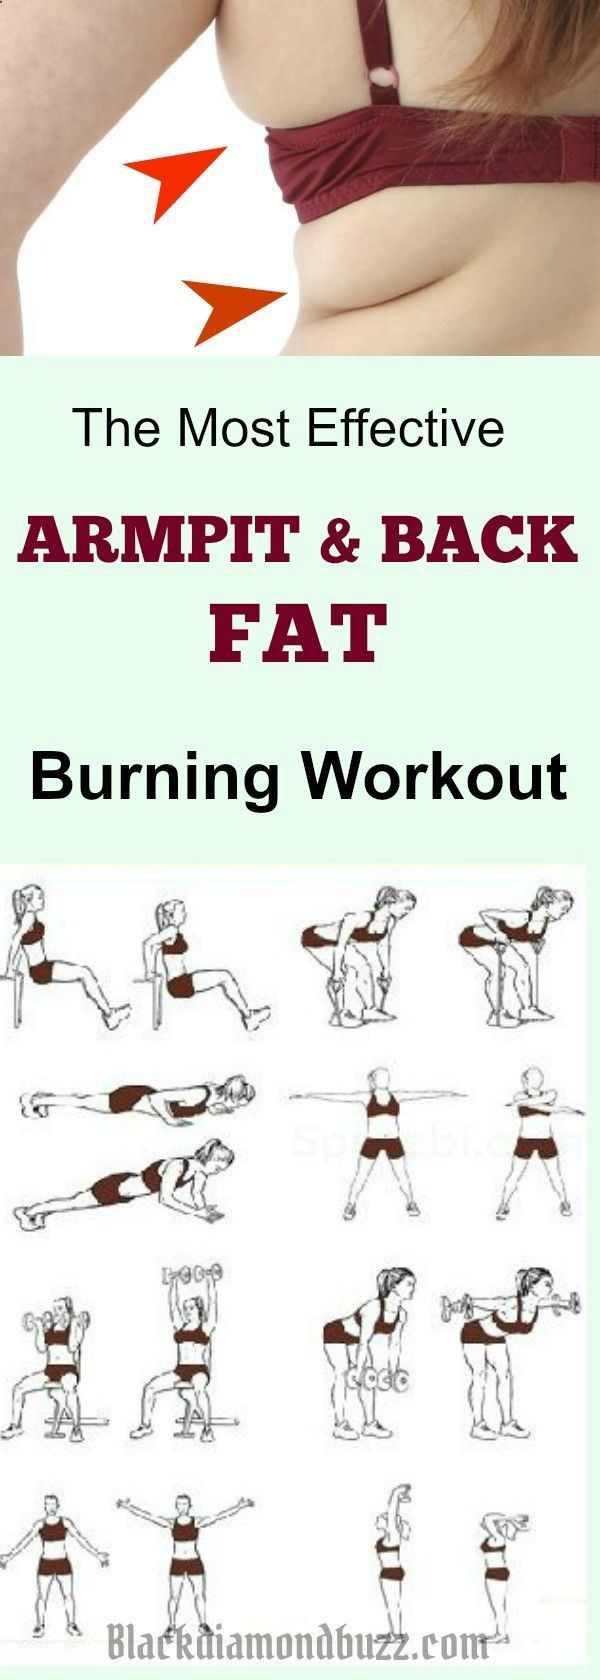 Best exercises for Back fat rolls and underarm fat at Home for Women : This is how you can get rid of back fat and armpit fat fast 1 week this summer . diet workout toned arms #HomeFitness